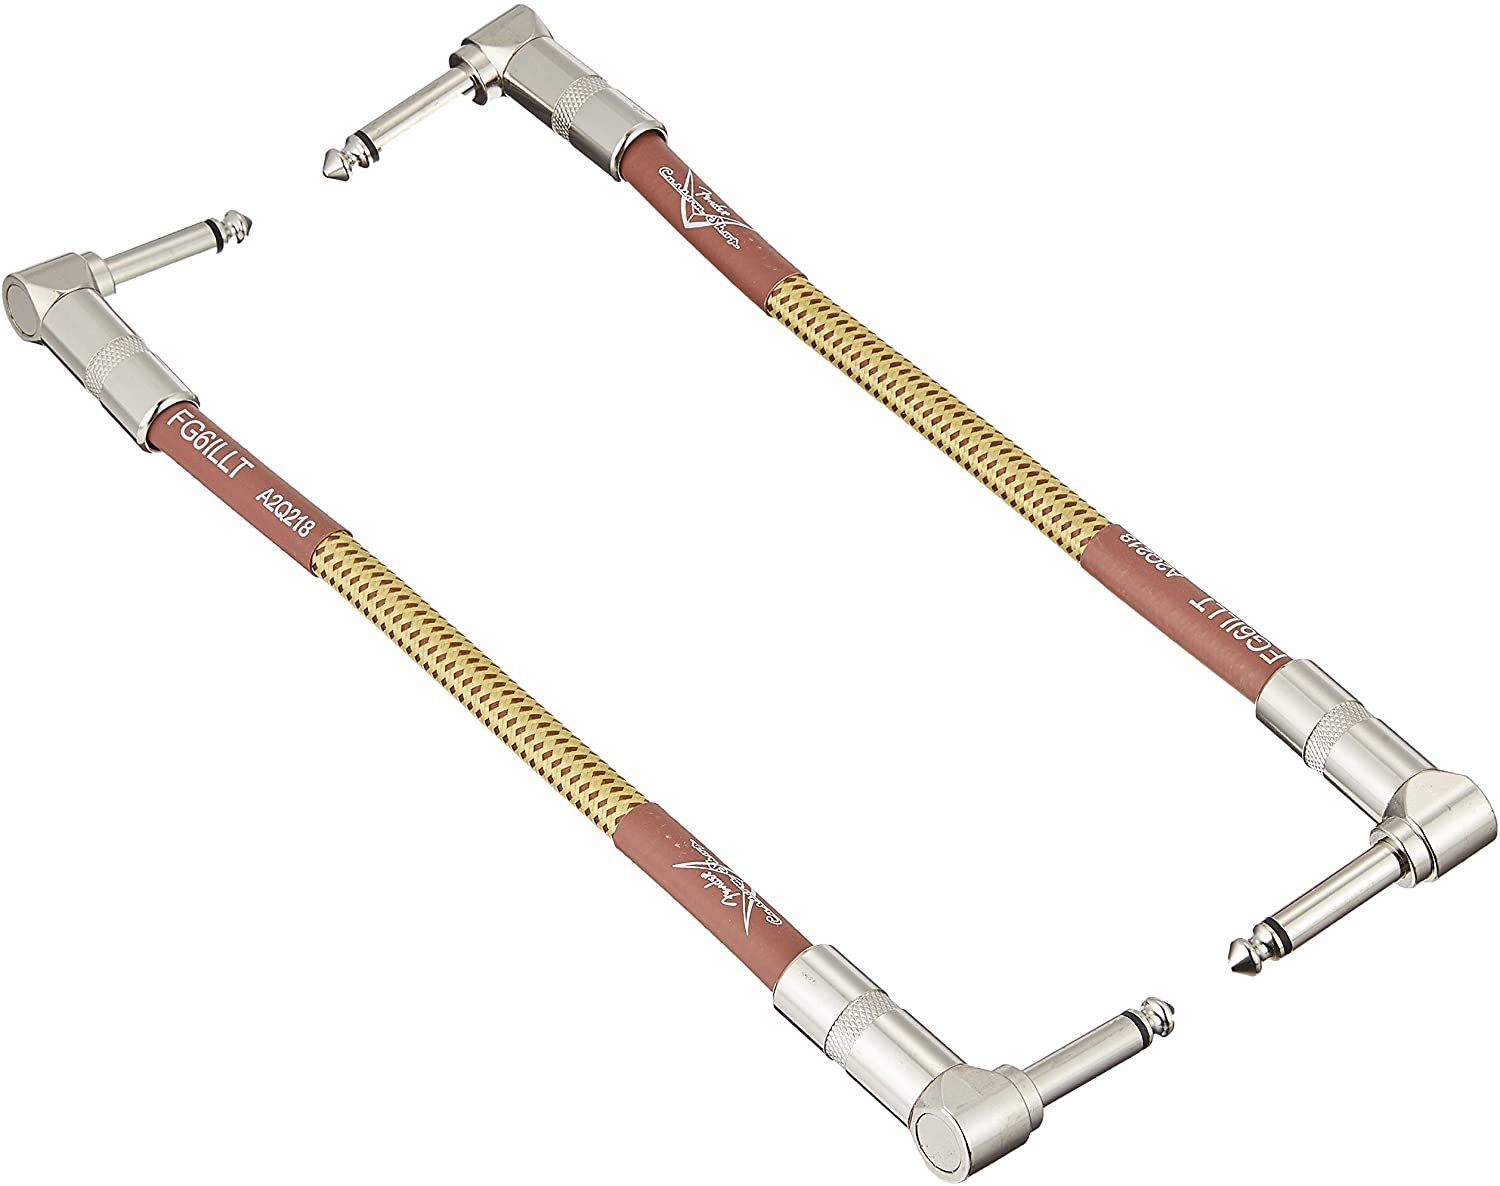 Fender Custom Shop 6 Patch Cable - Tweed